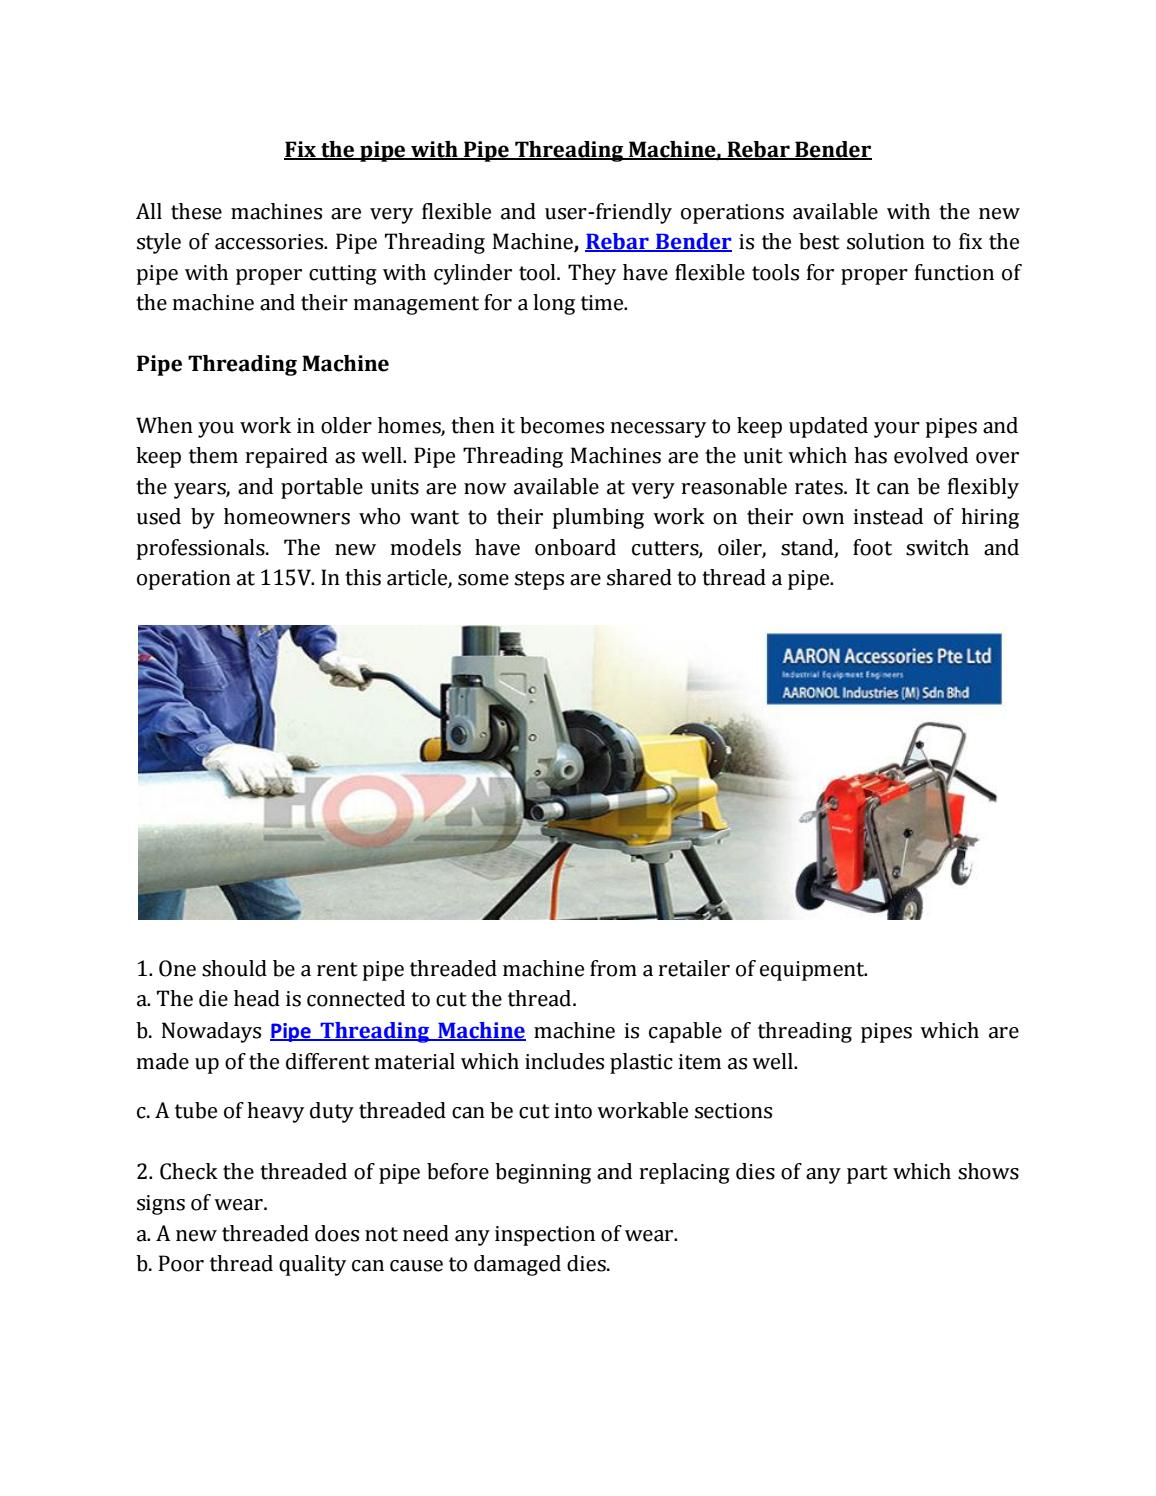 Fix The Pipe With Threading Machine Rebar Bender By Amelia Lim This Is How Should Be Threaded Issuu